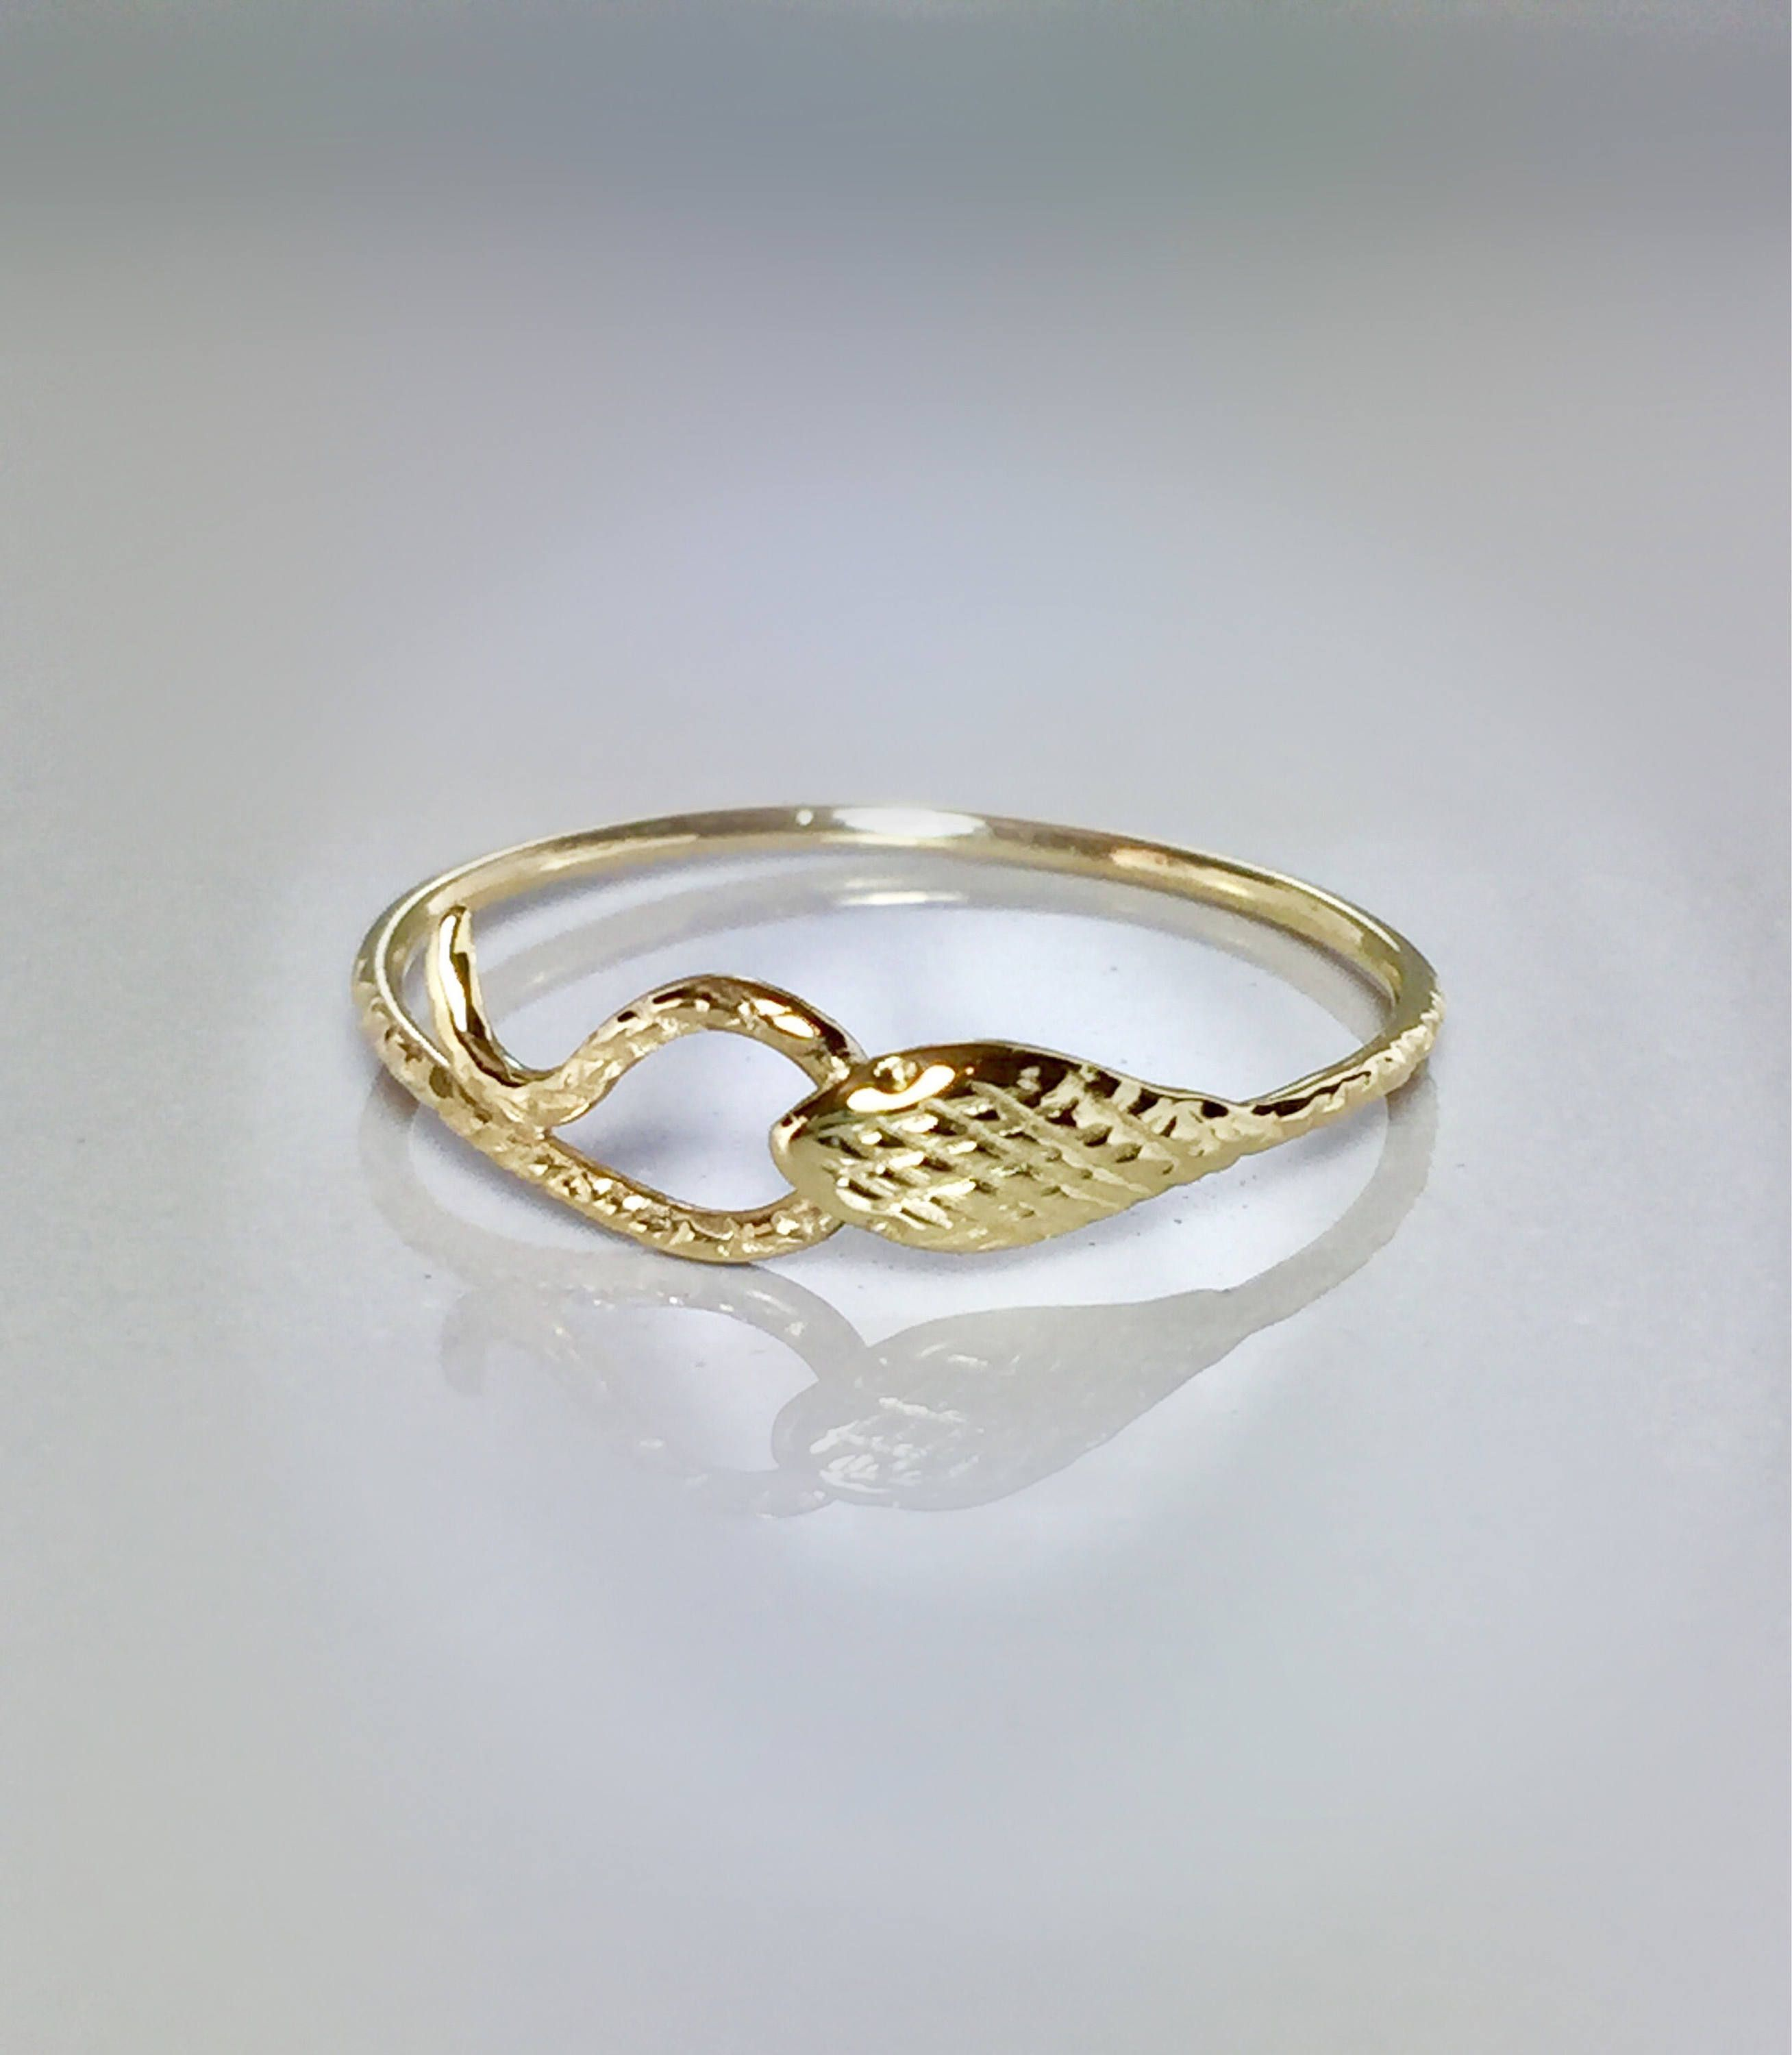 roman a rings ancient circa gold jewelry ring s wearable art century c d nyr serpent b snake